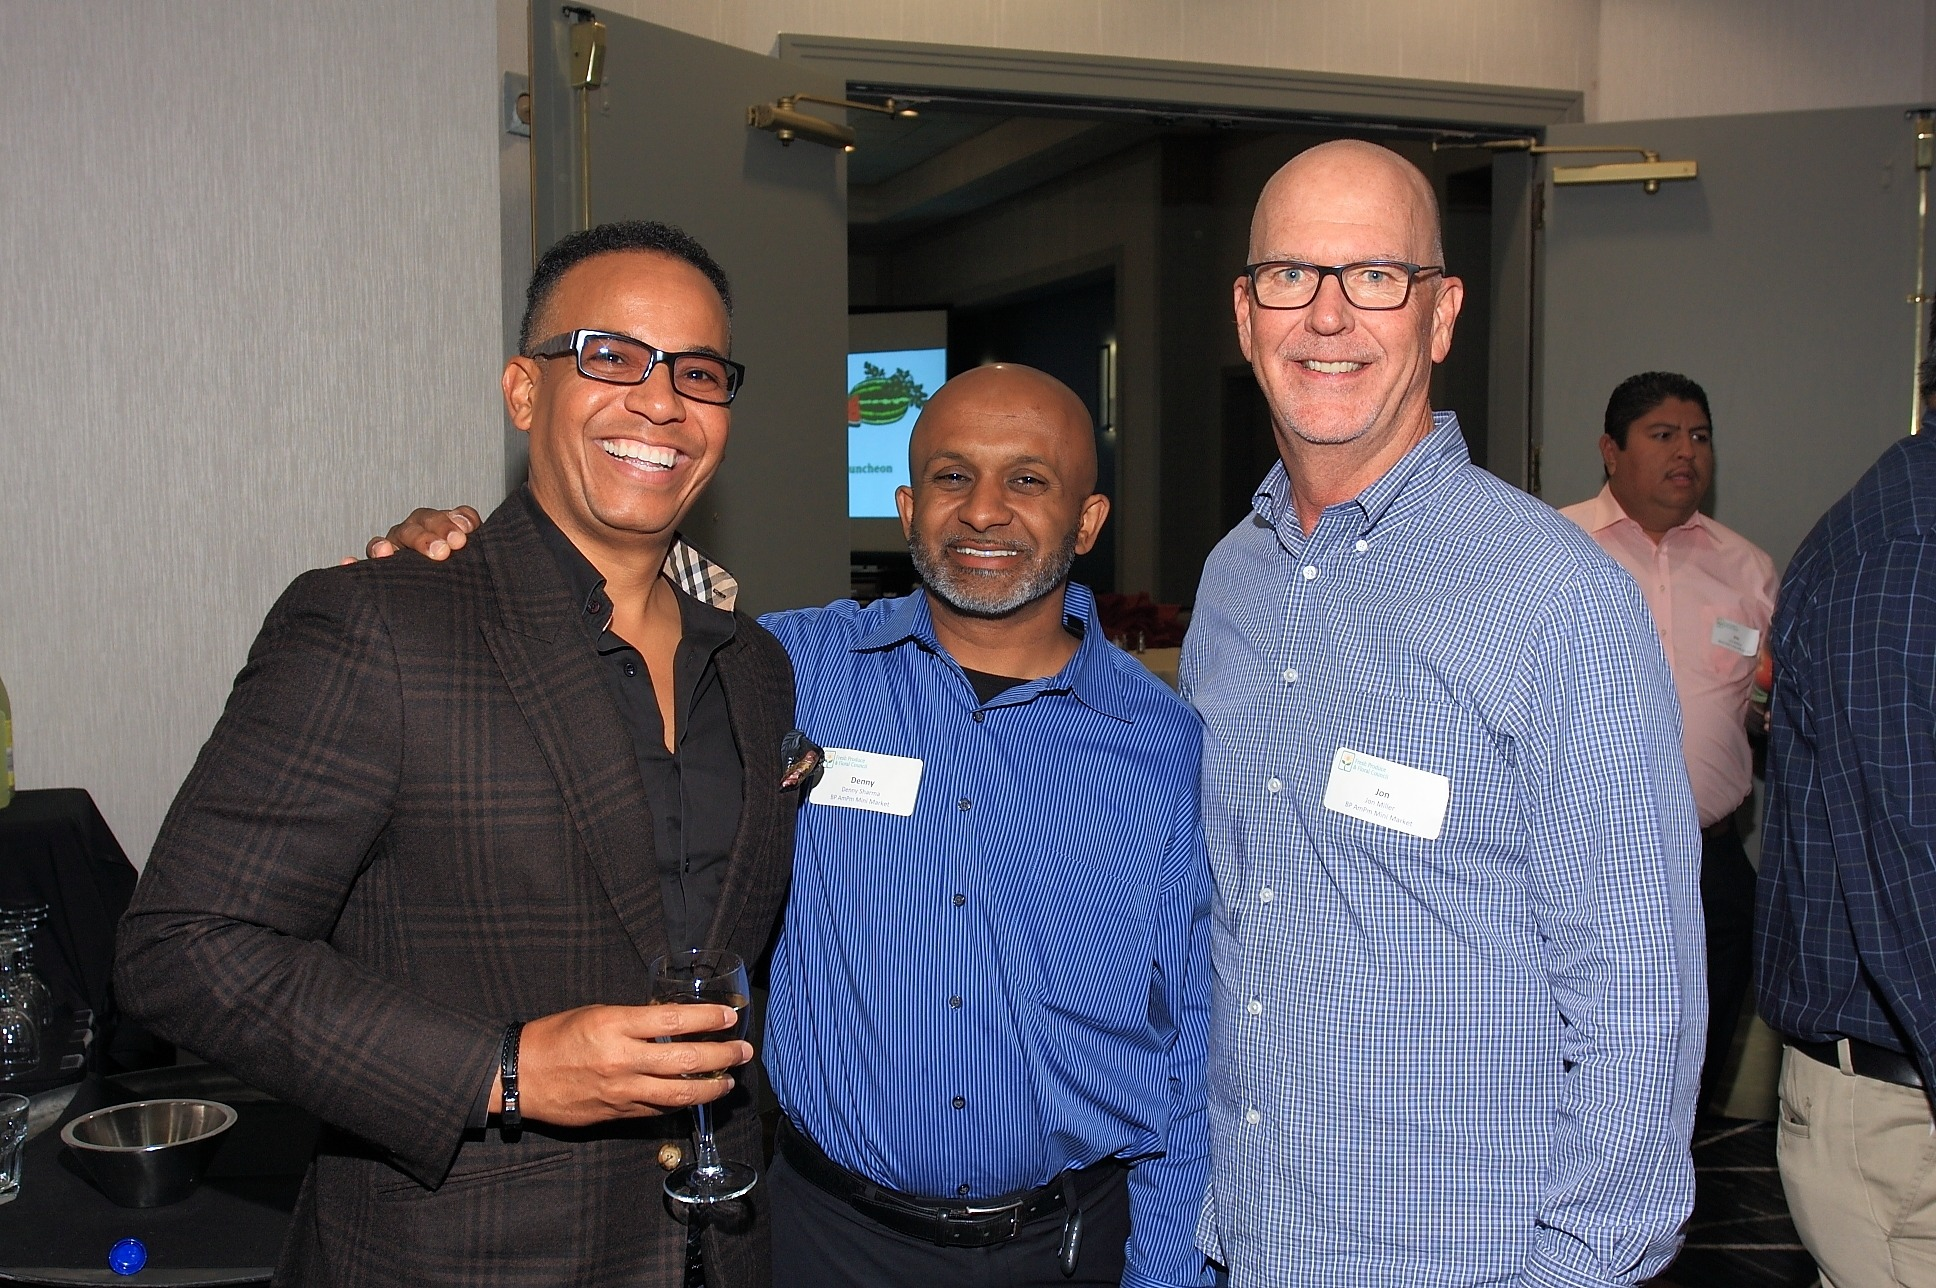 Robert Thompson of FreshSource with Denny Sharma and John Miller of ampm Mini Market.